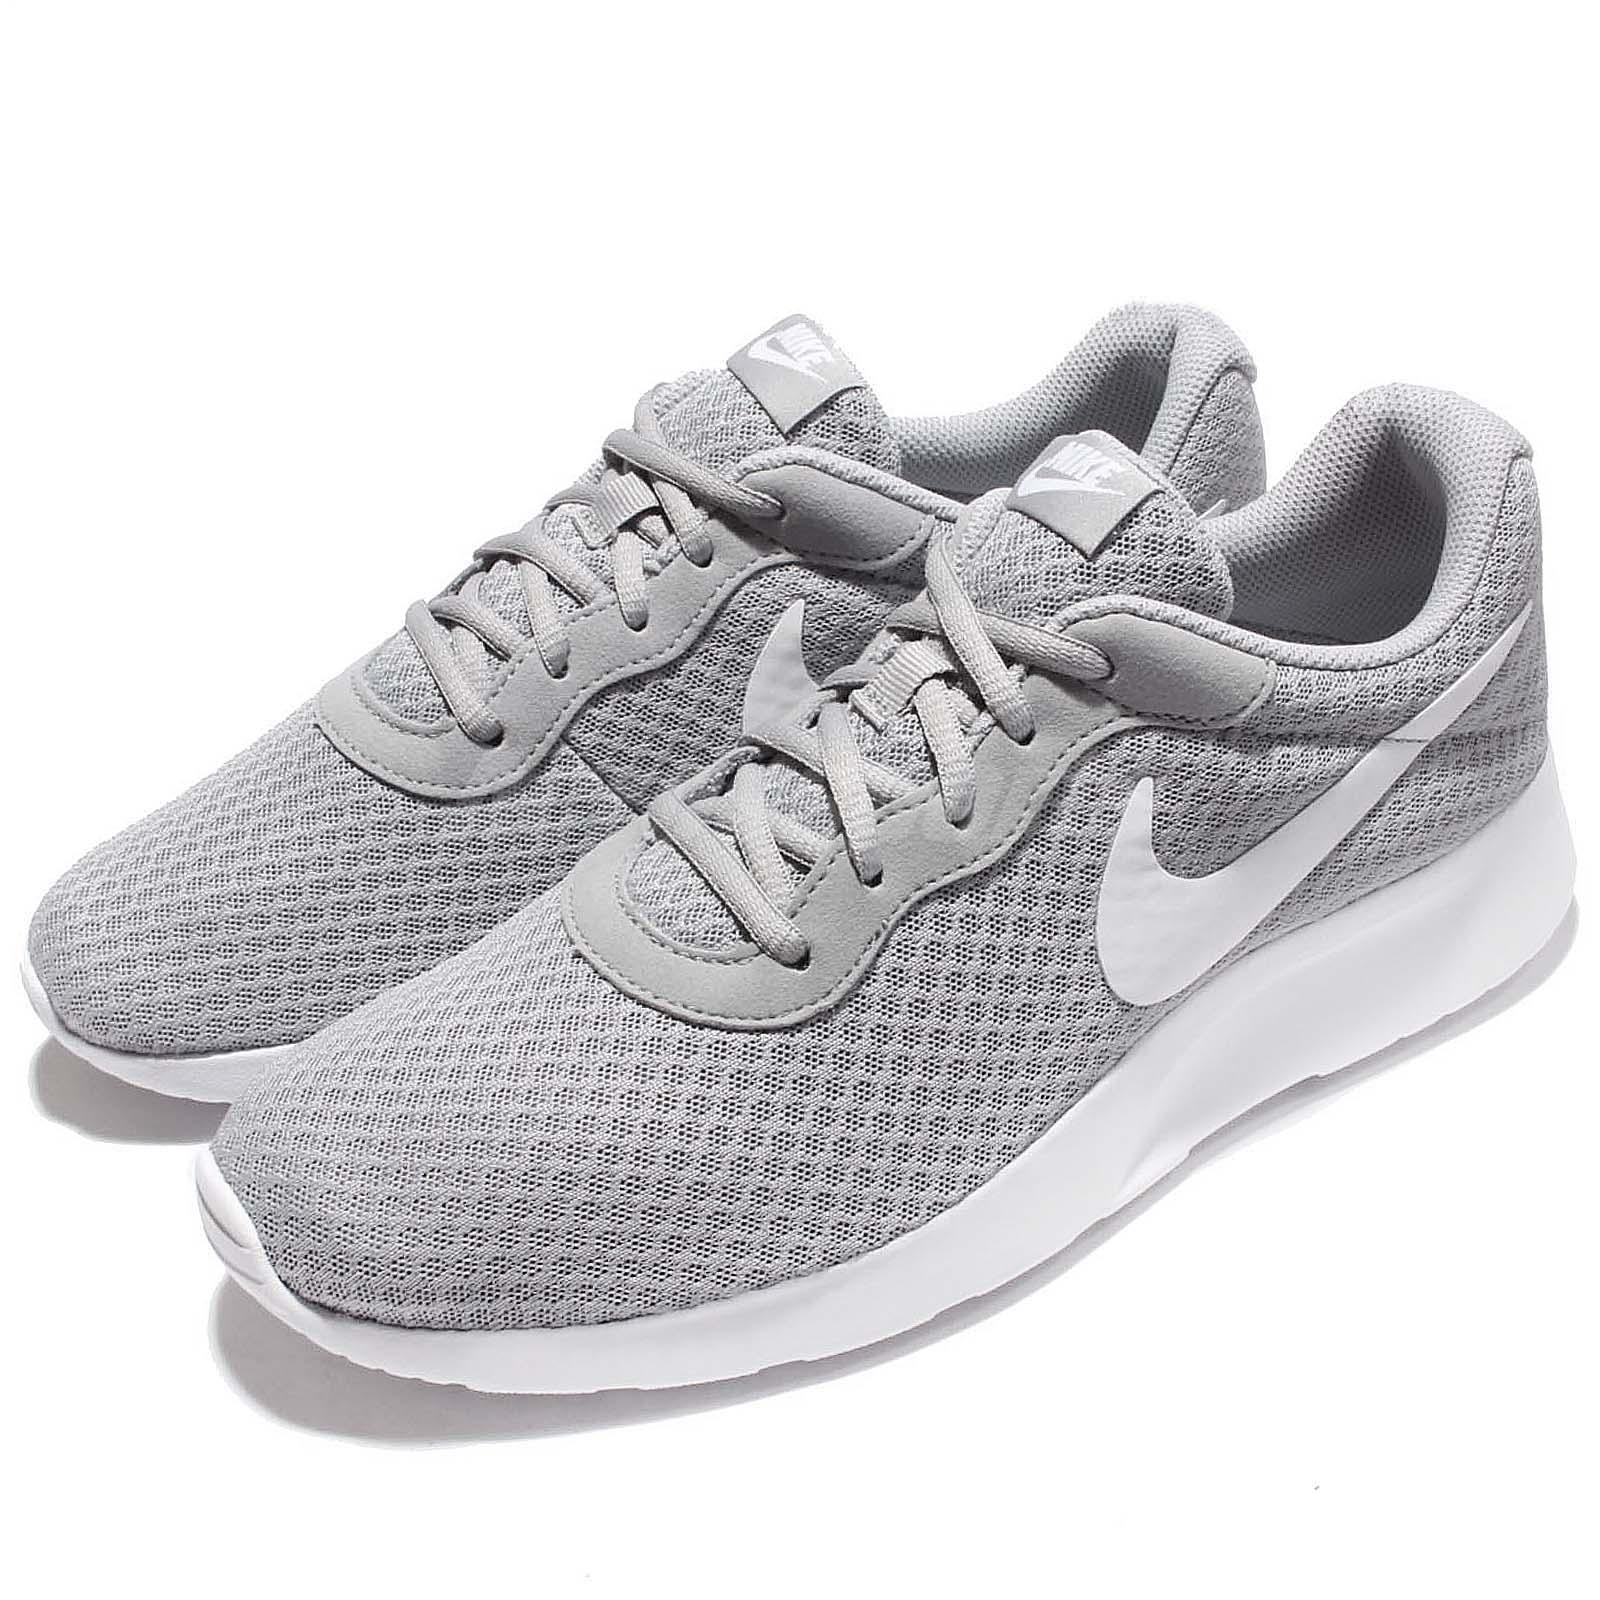 newest collection 6447a b0cbe Details about Nike Tanjun Wolf Grey White NSW Mens Running Shoes 812654-010